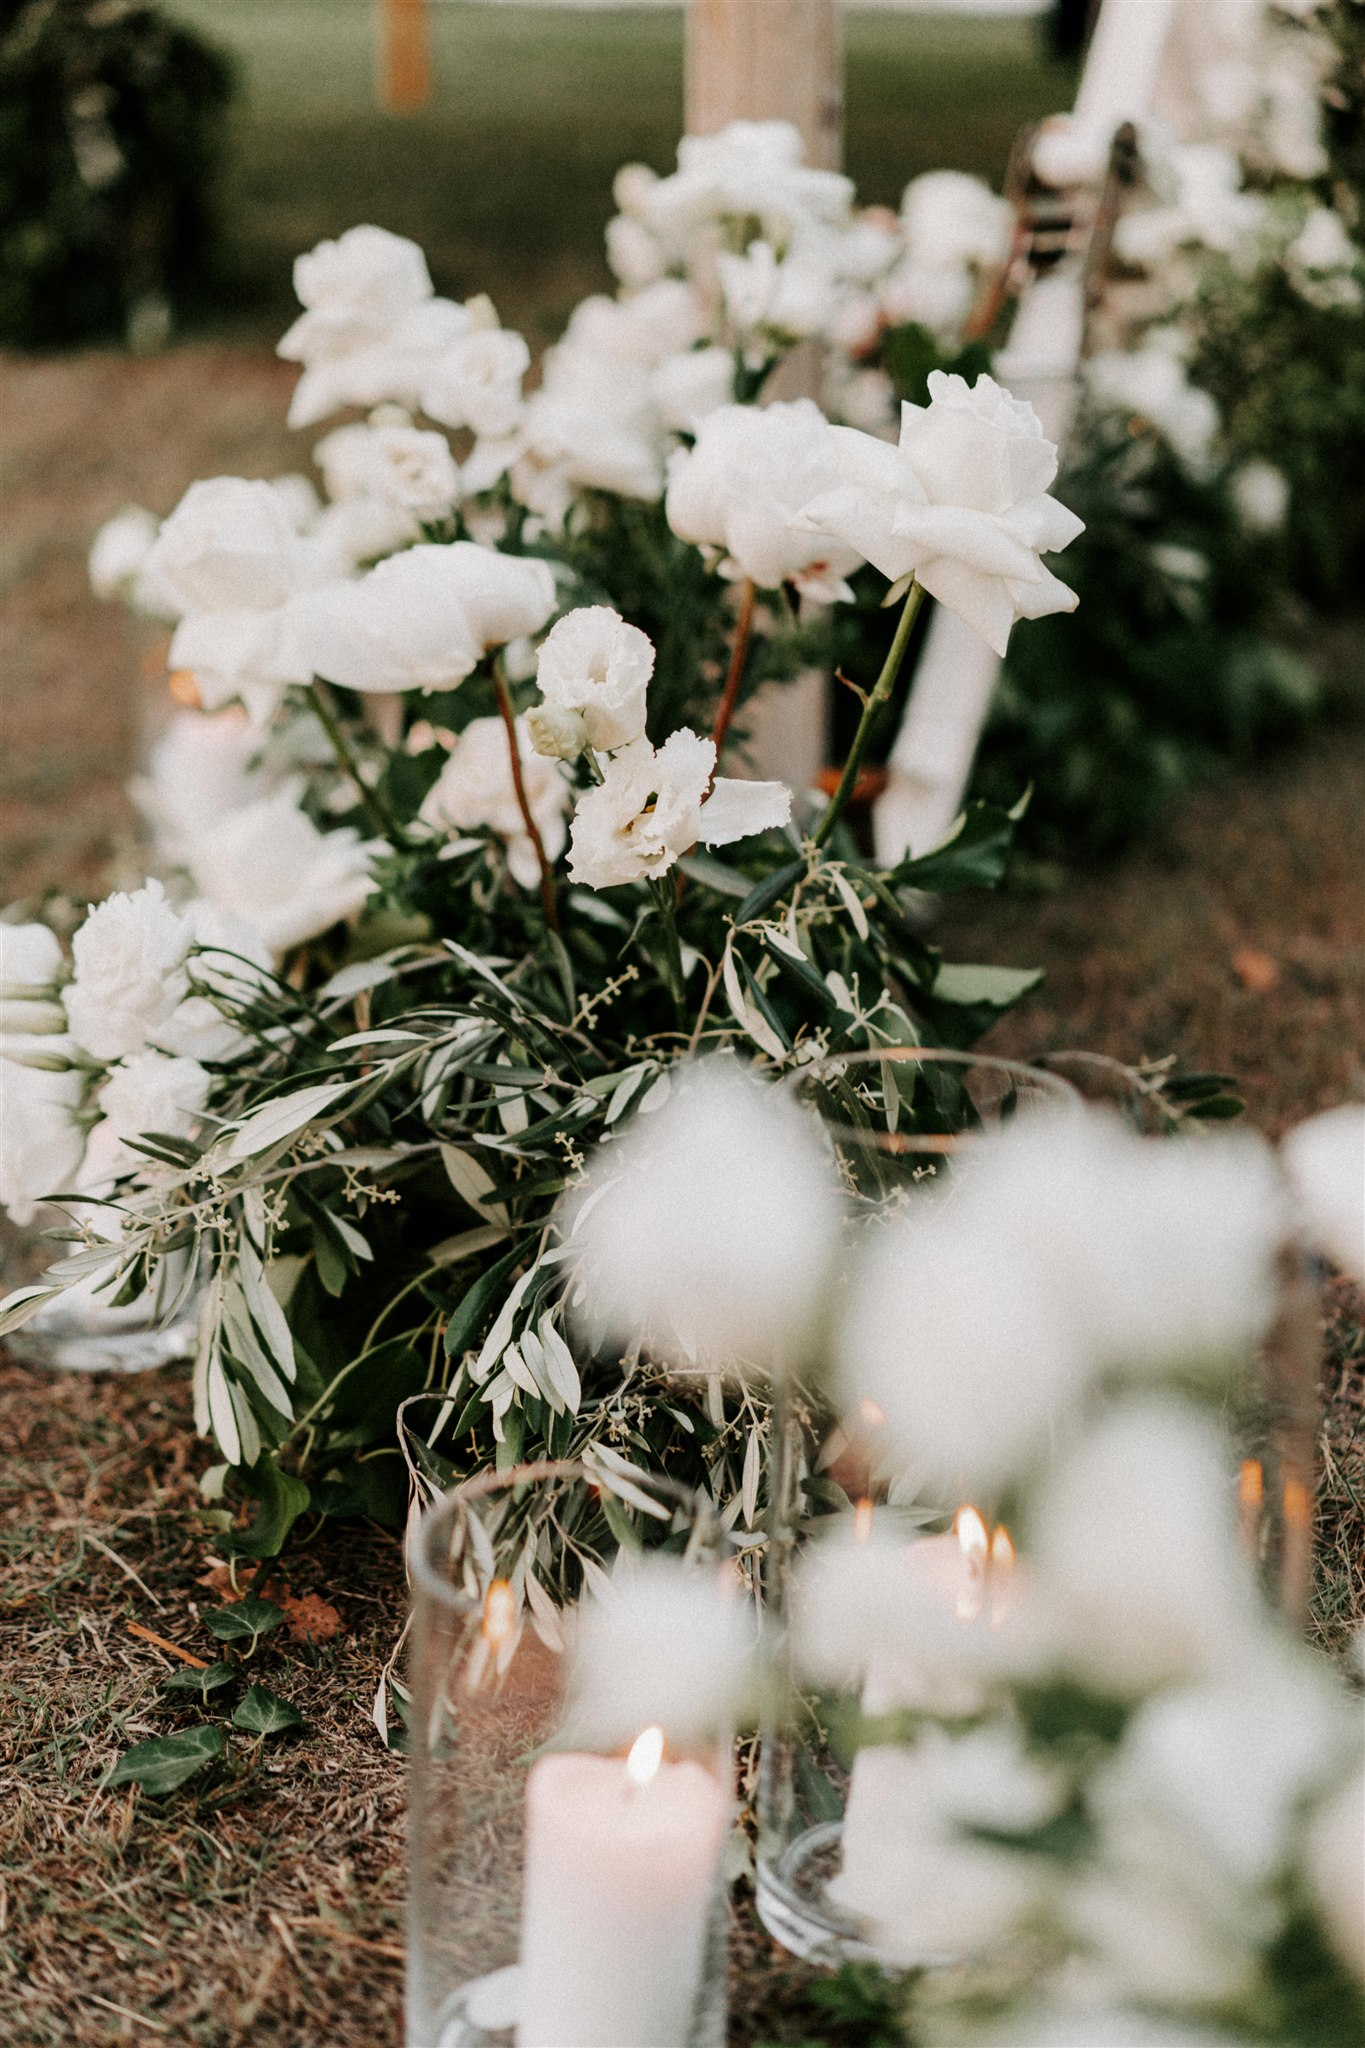 White and green hedging flowers